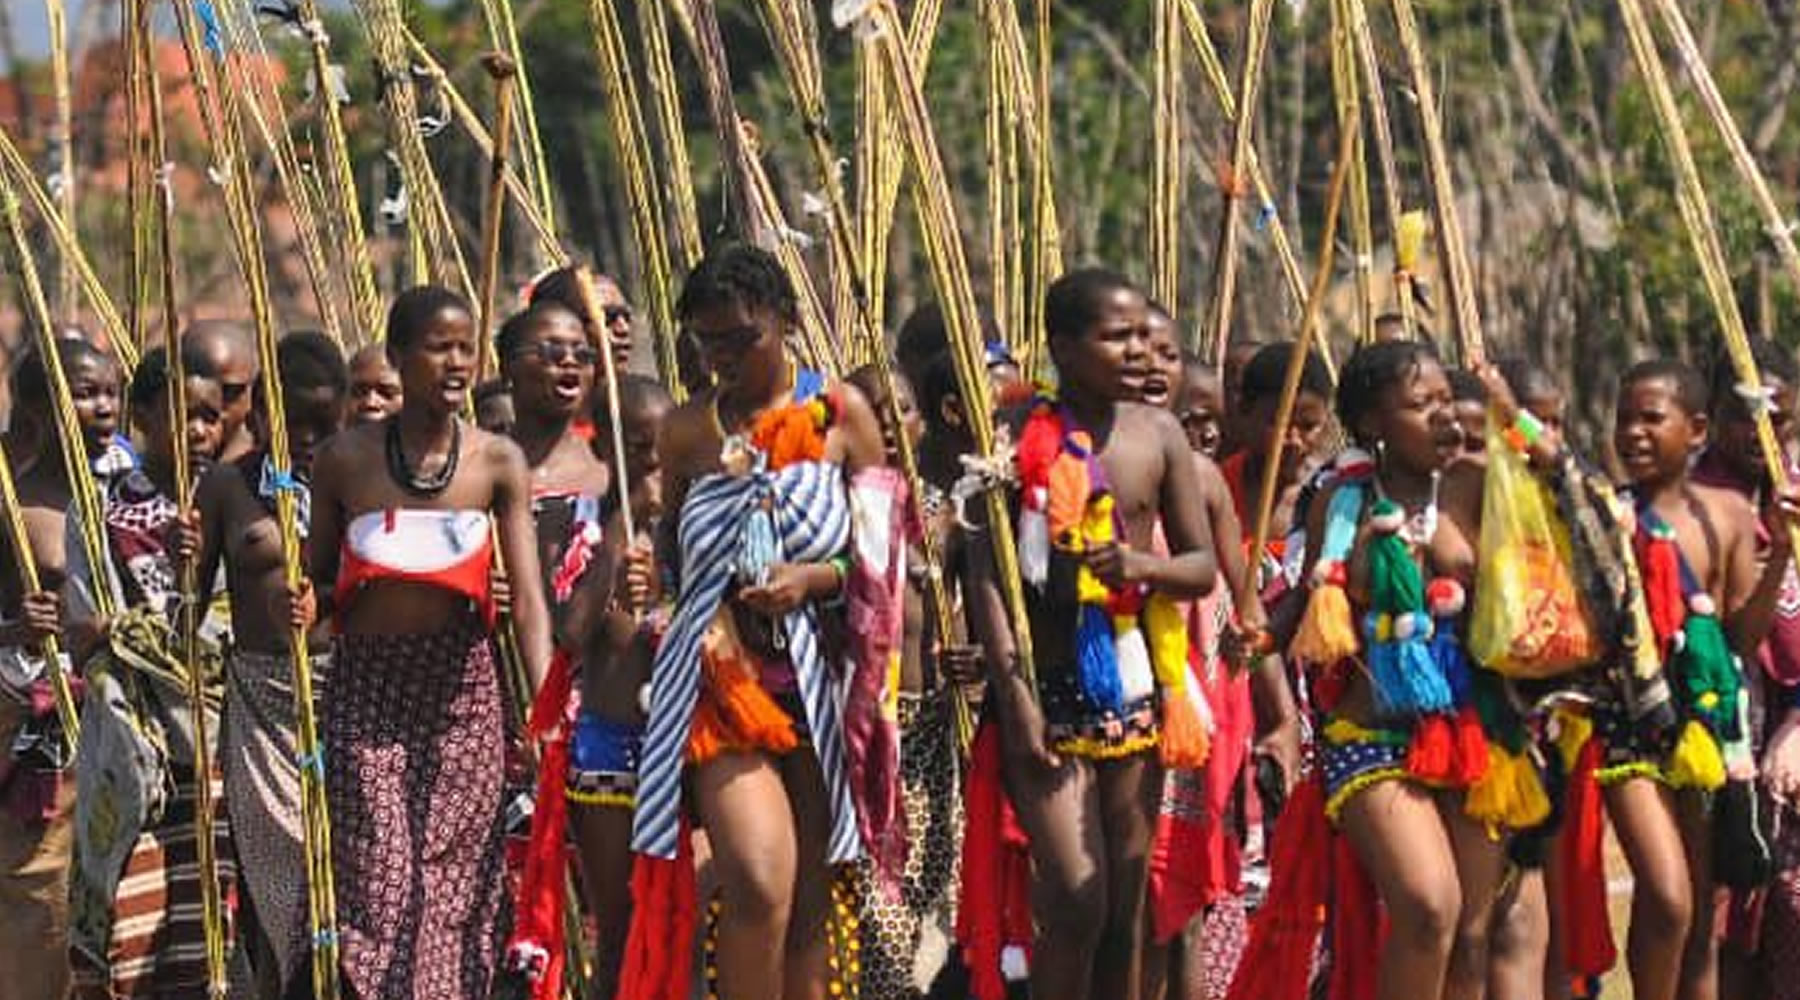 ESwatini Reed Dance enhances culture, women rights advocacy and tourism